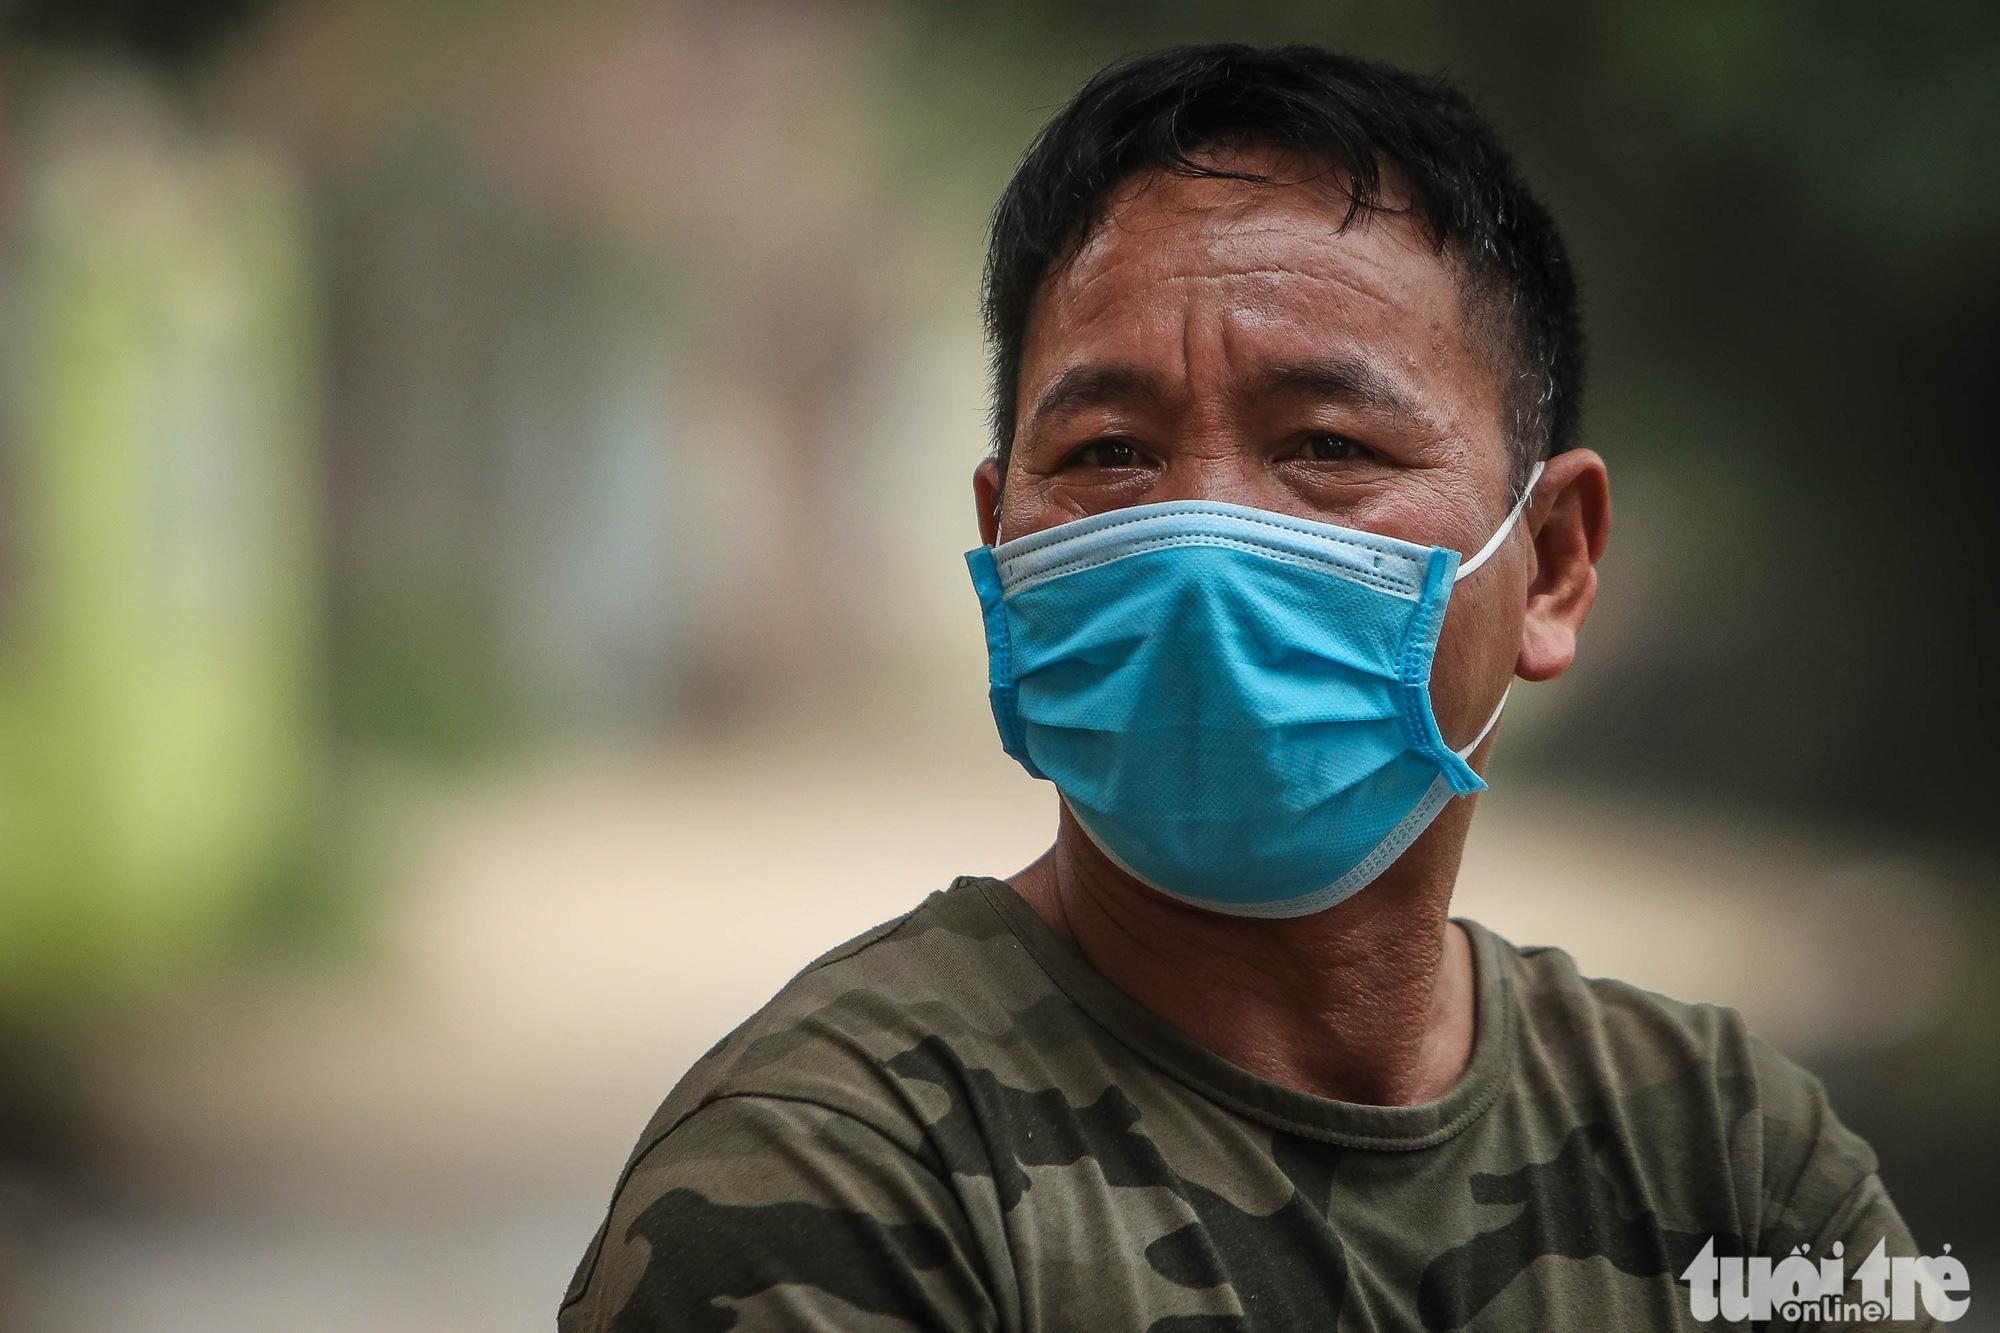 Pham Van Bon, a neighbor of a family in Son Loi Commune, Binh Xuyen District, Vinh Phuc Province, Vietnam with four members already infected with the novel coronavirus, is photographed wearing a face mask on February 11, 2020. Photo: Nguyen Khanh / Tuoi Tre